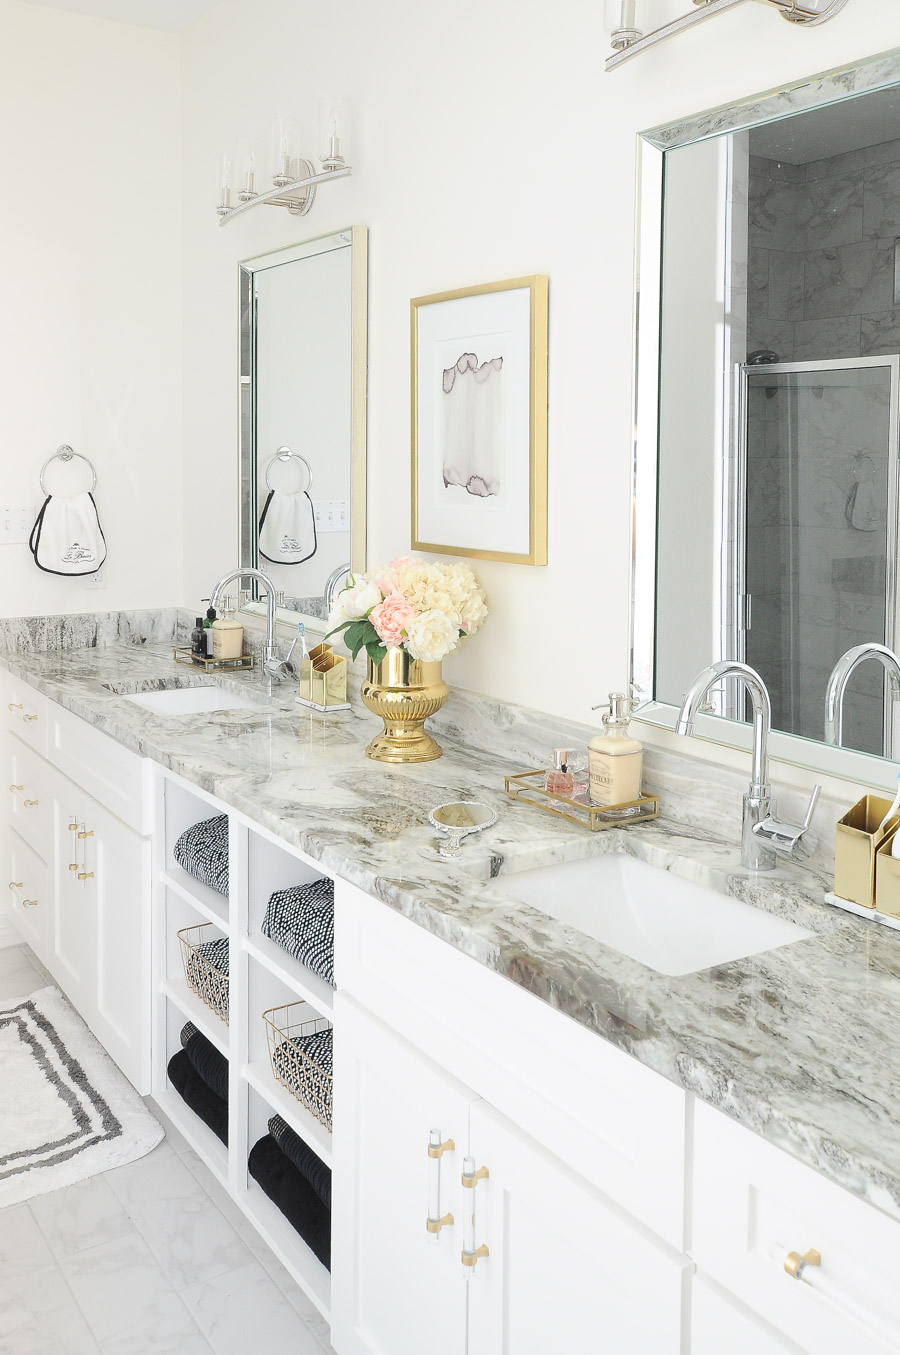 Glamorous bright white and gold master bathroom with gorgeous marble floors! The decor in this space is perfection.